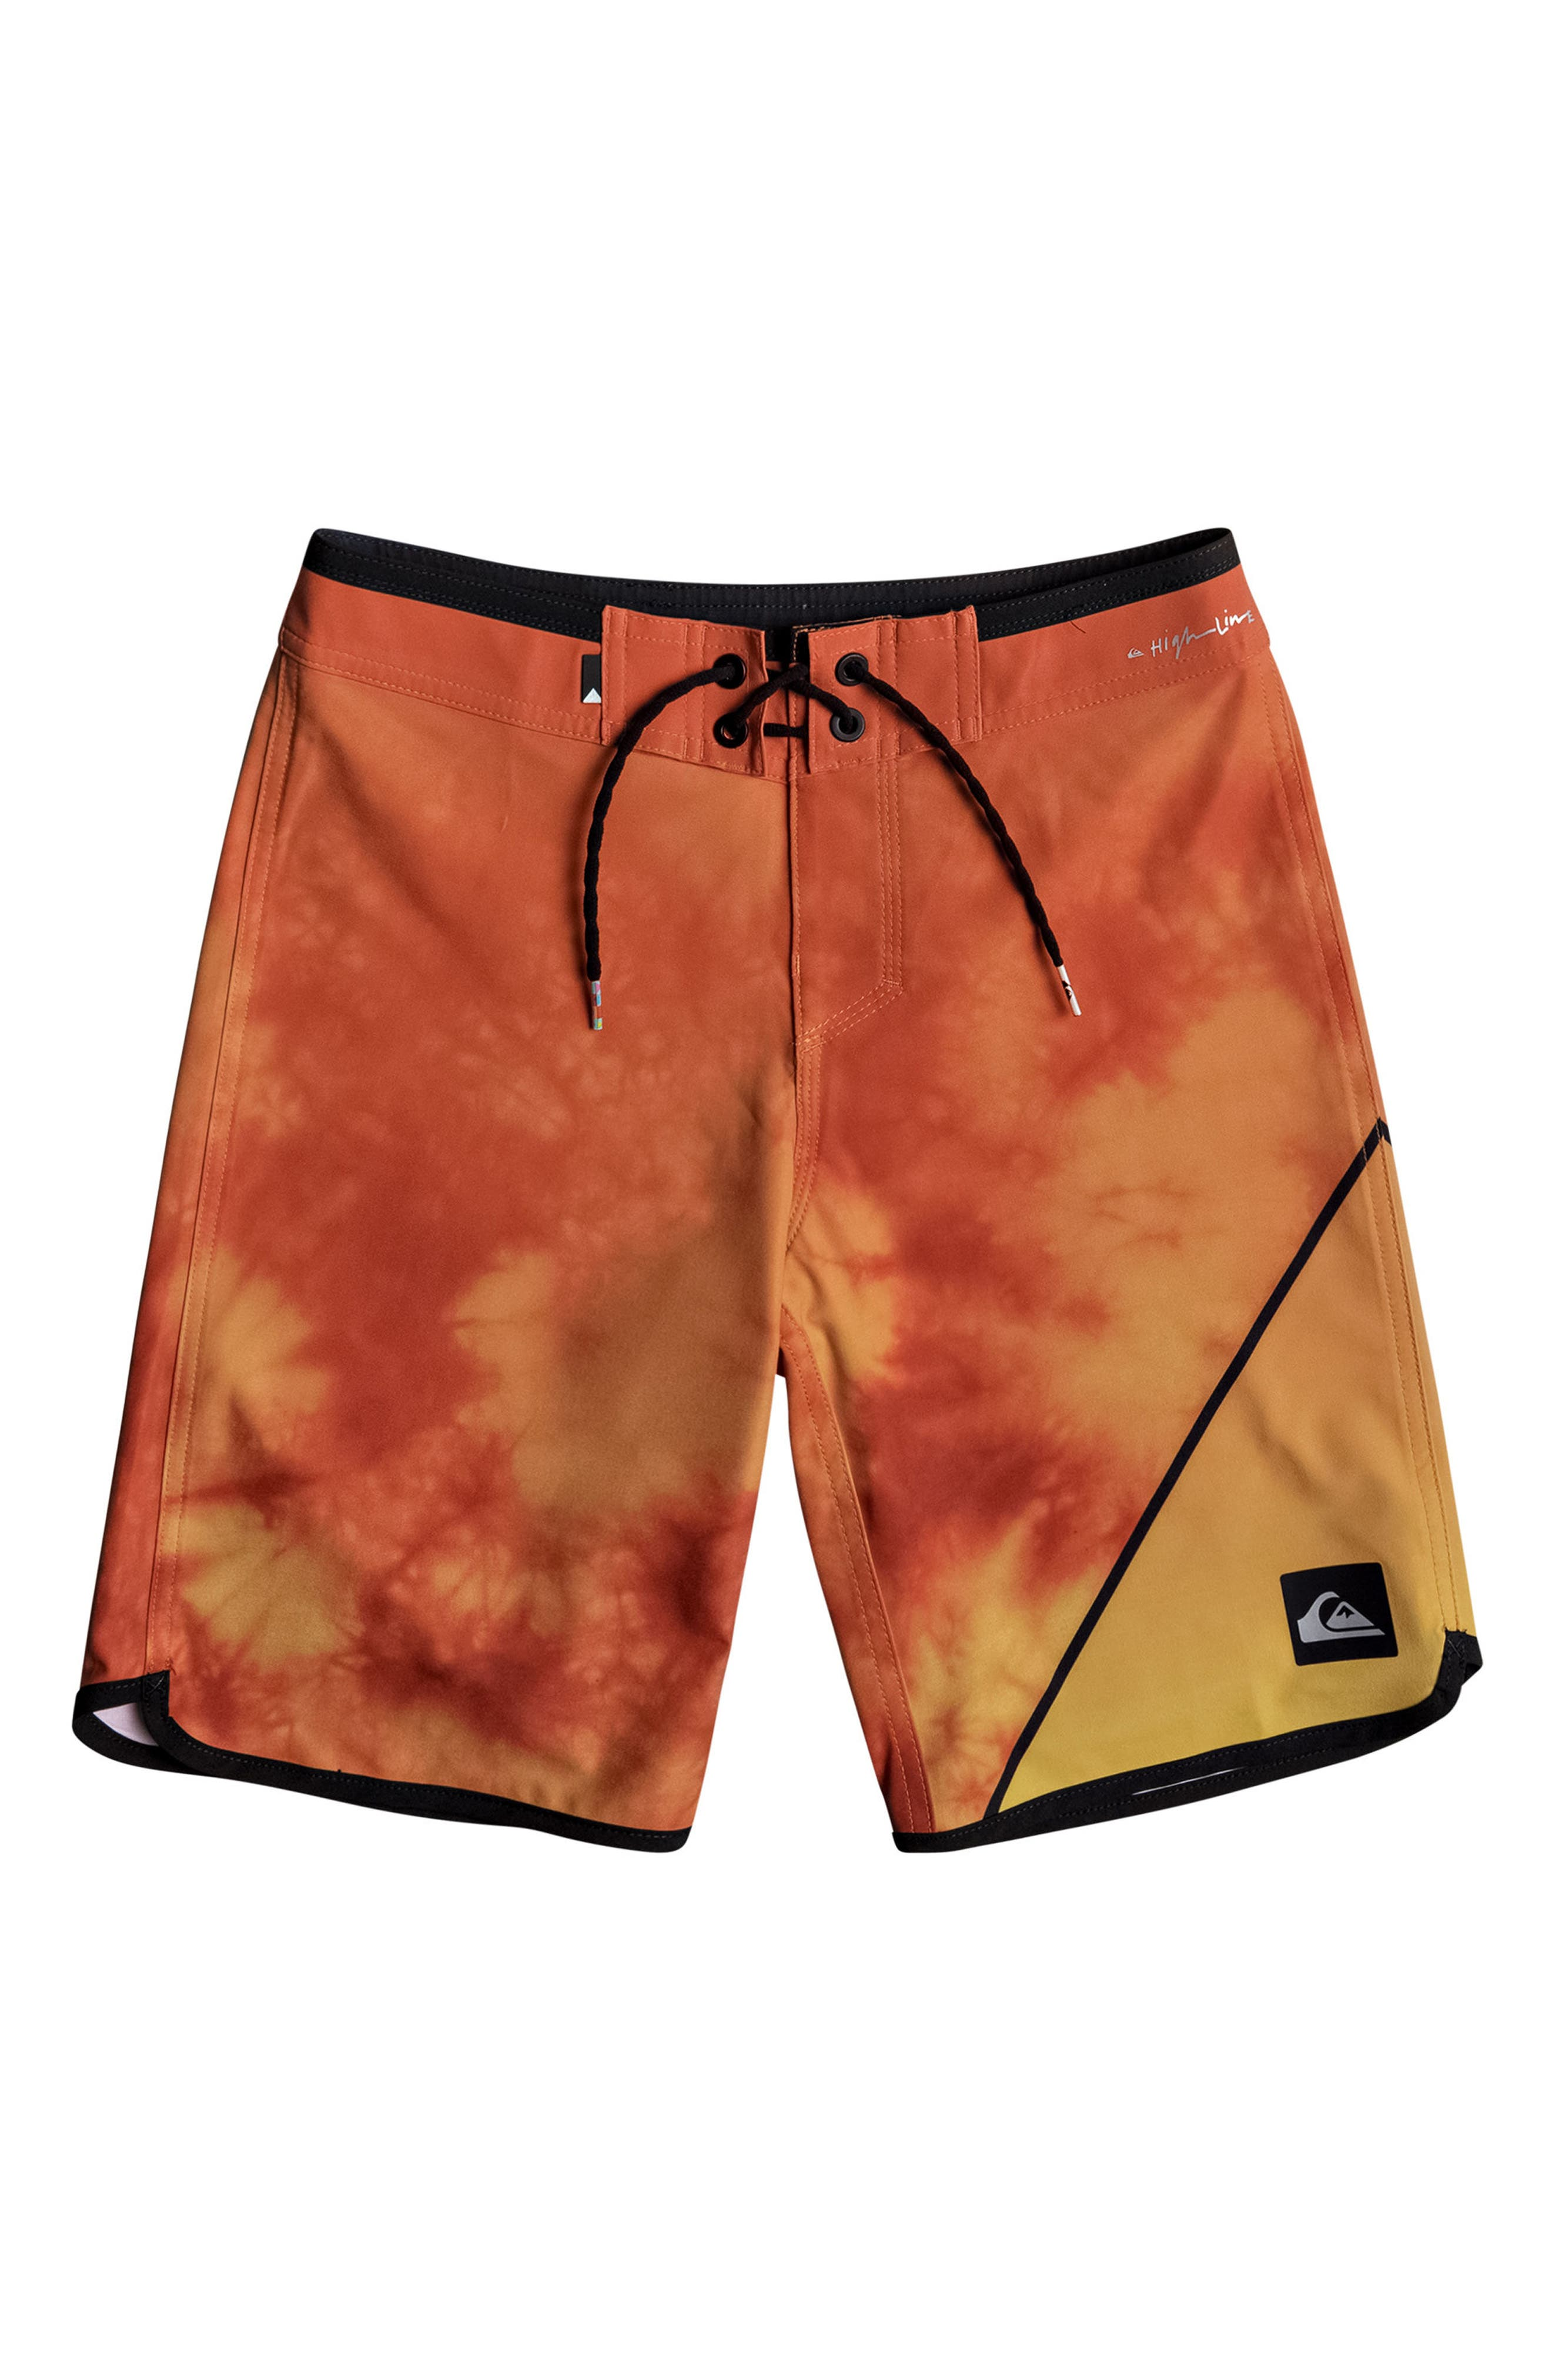 Alternate Image 1 Selected - Quiksilver New Wave Board Shorts (Big Boys)